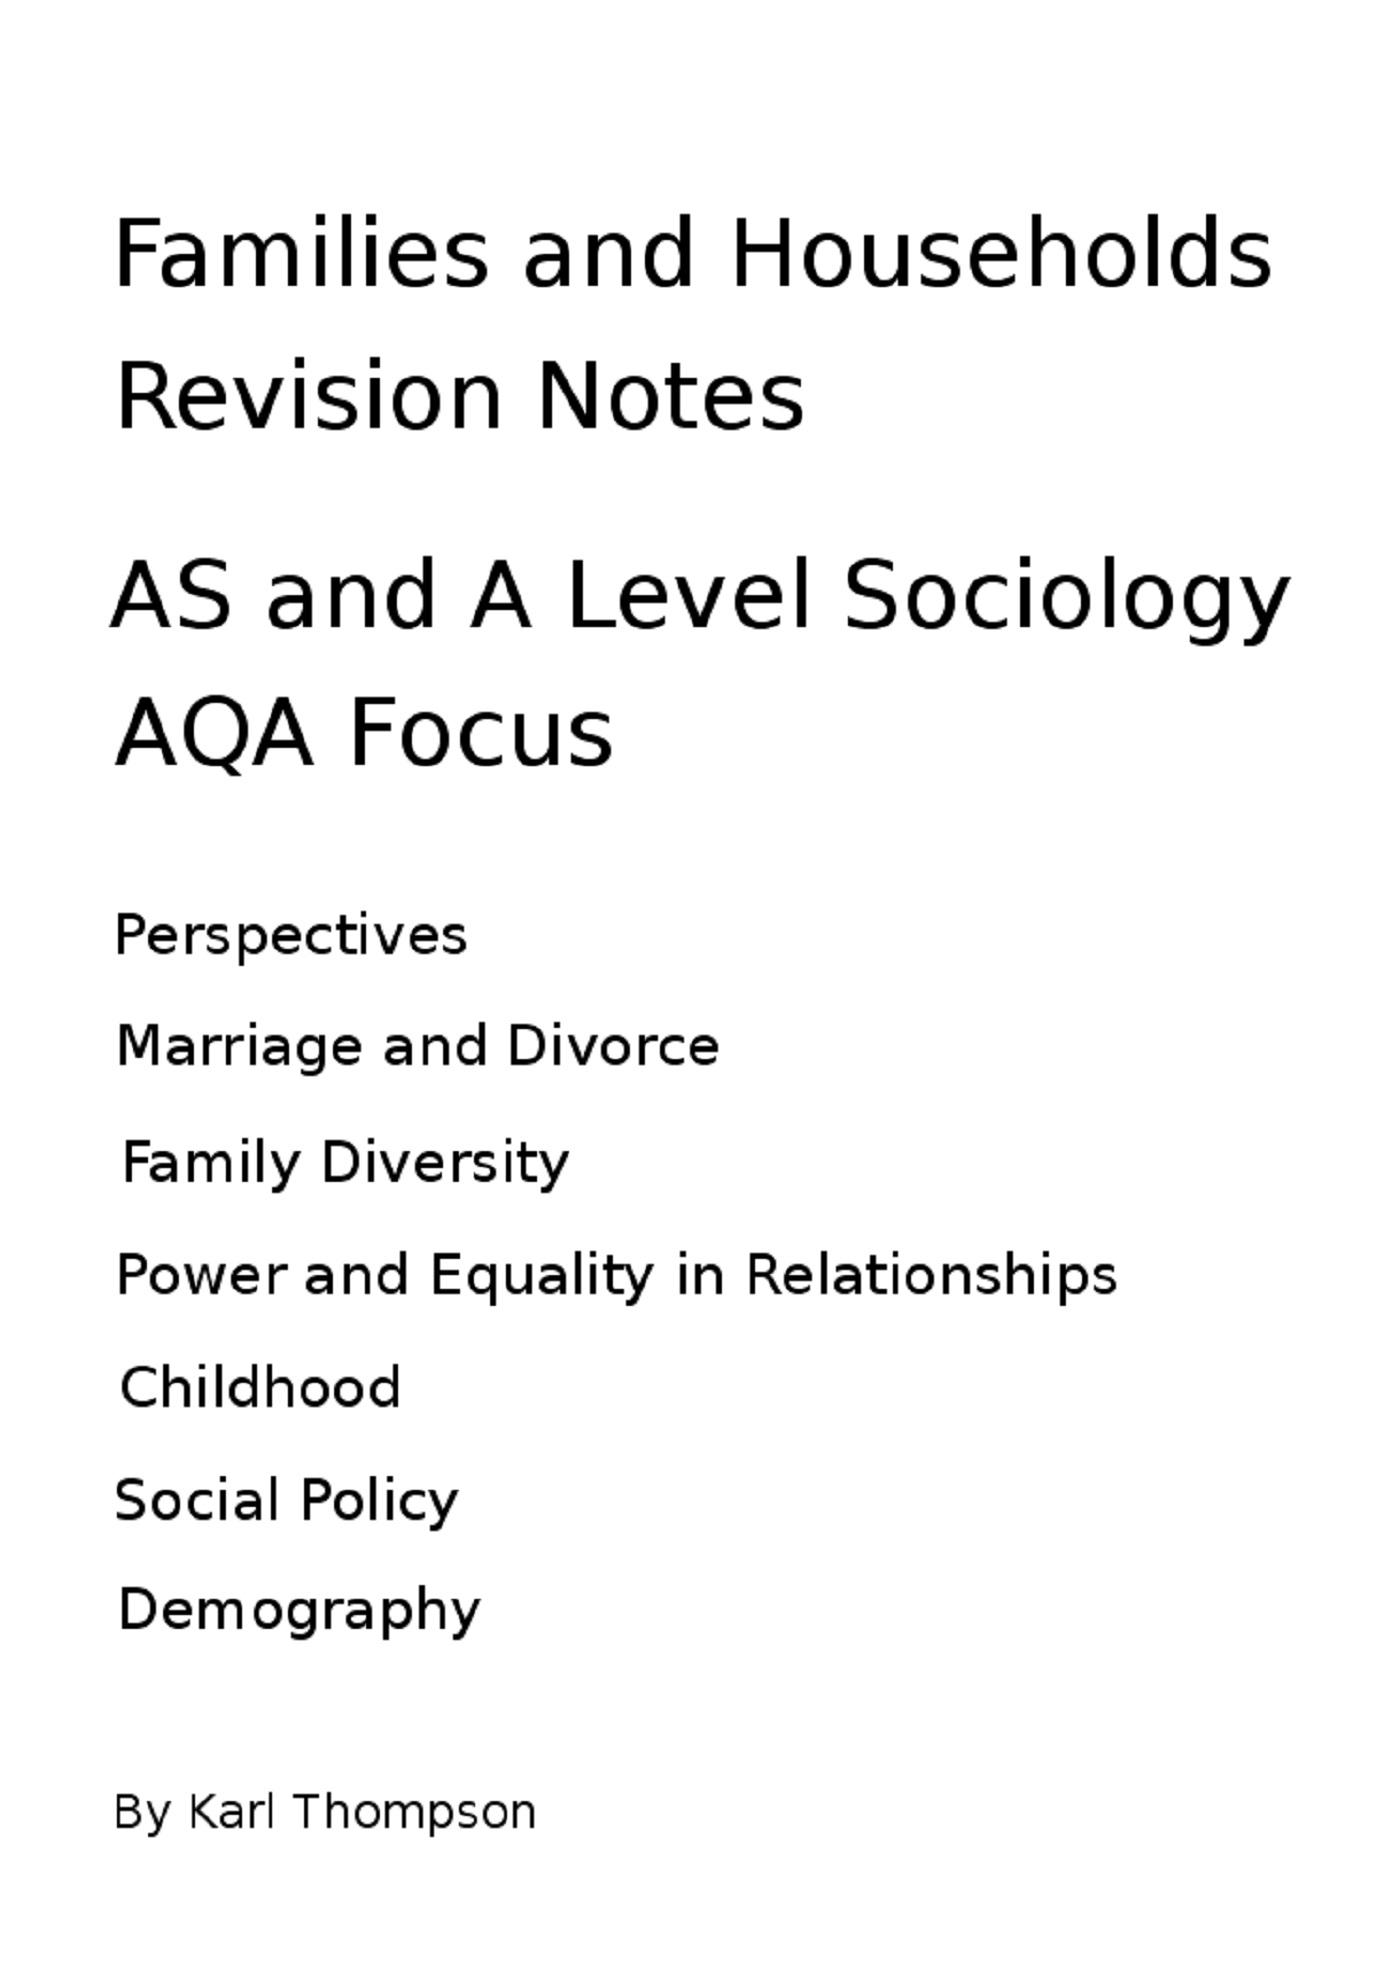 sociological view of divorce family Contemporary families face a host of unprecedented issues one of the major lingering sociological puzzles is the persistent gendered distribution of family responsibilities in western industrial nations this article provides a general overview of gender and families across a range of dimensions.